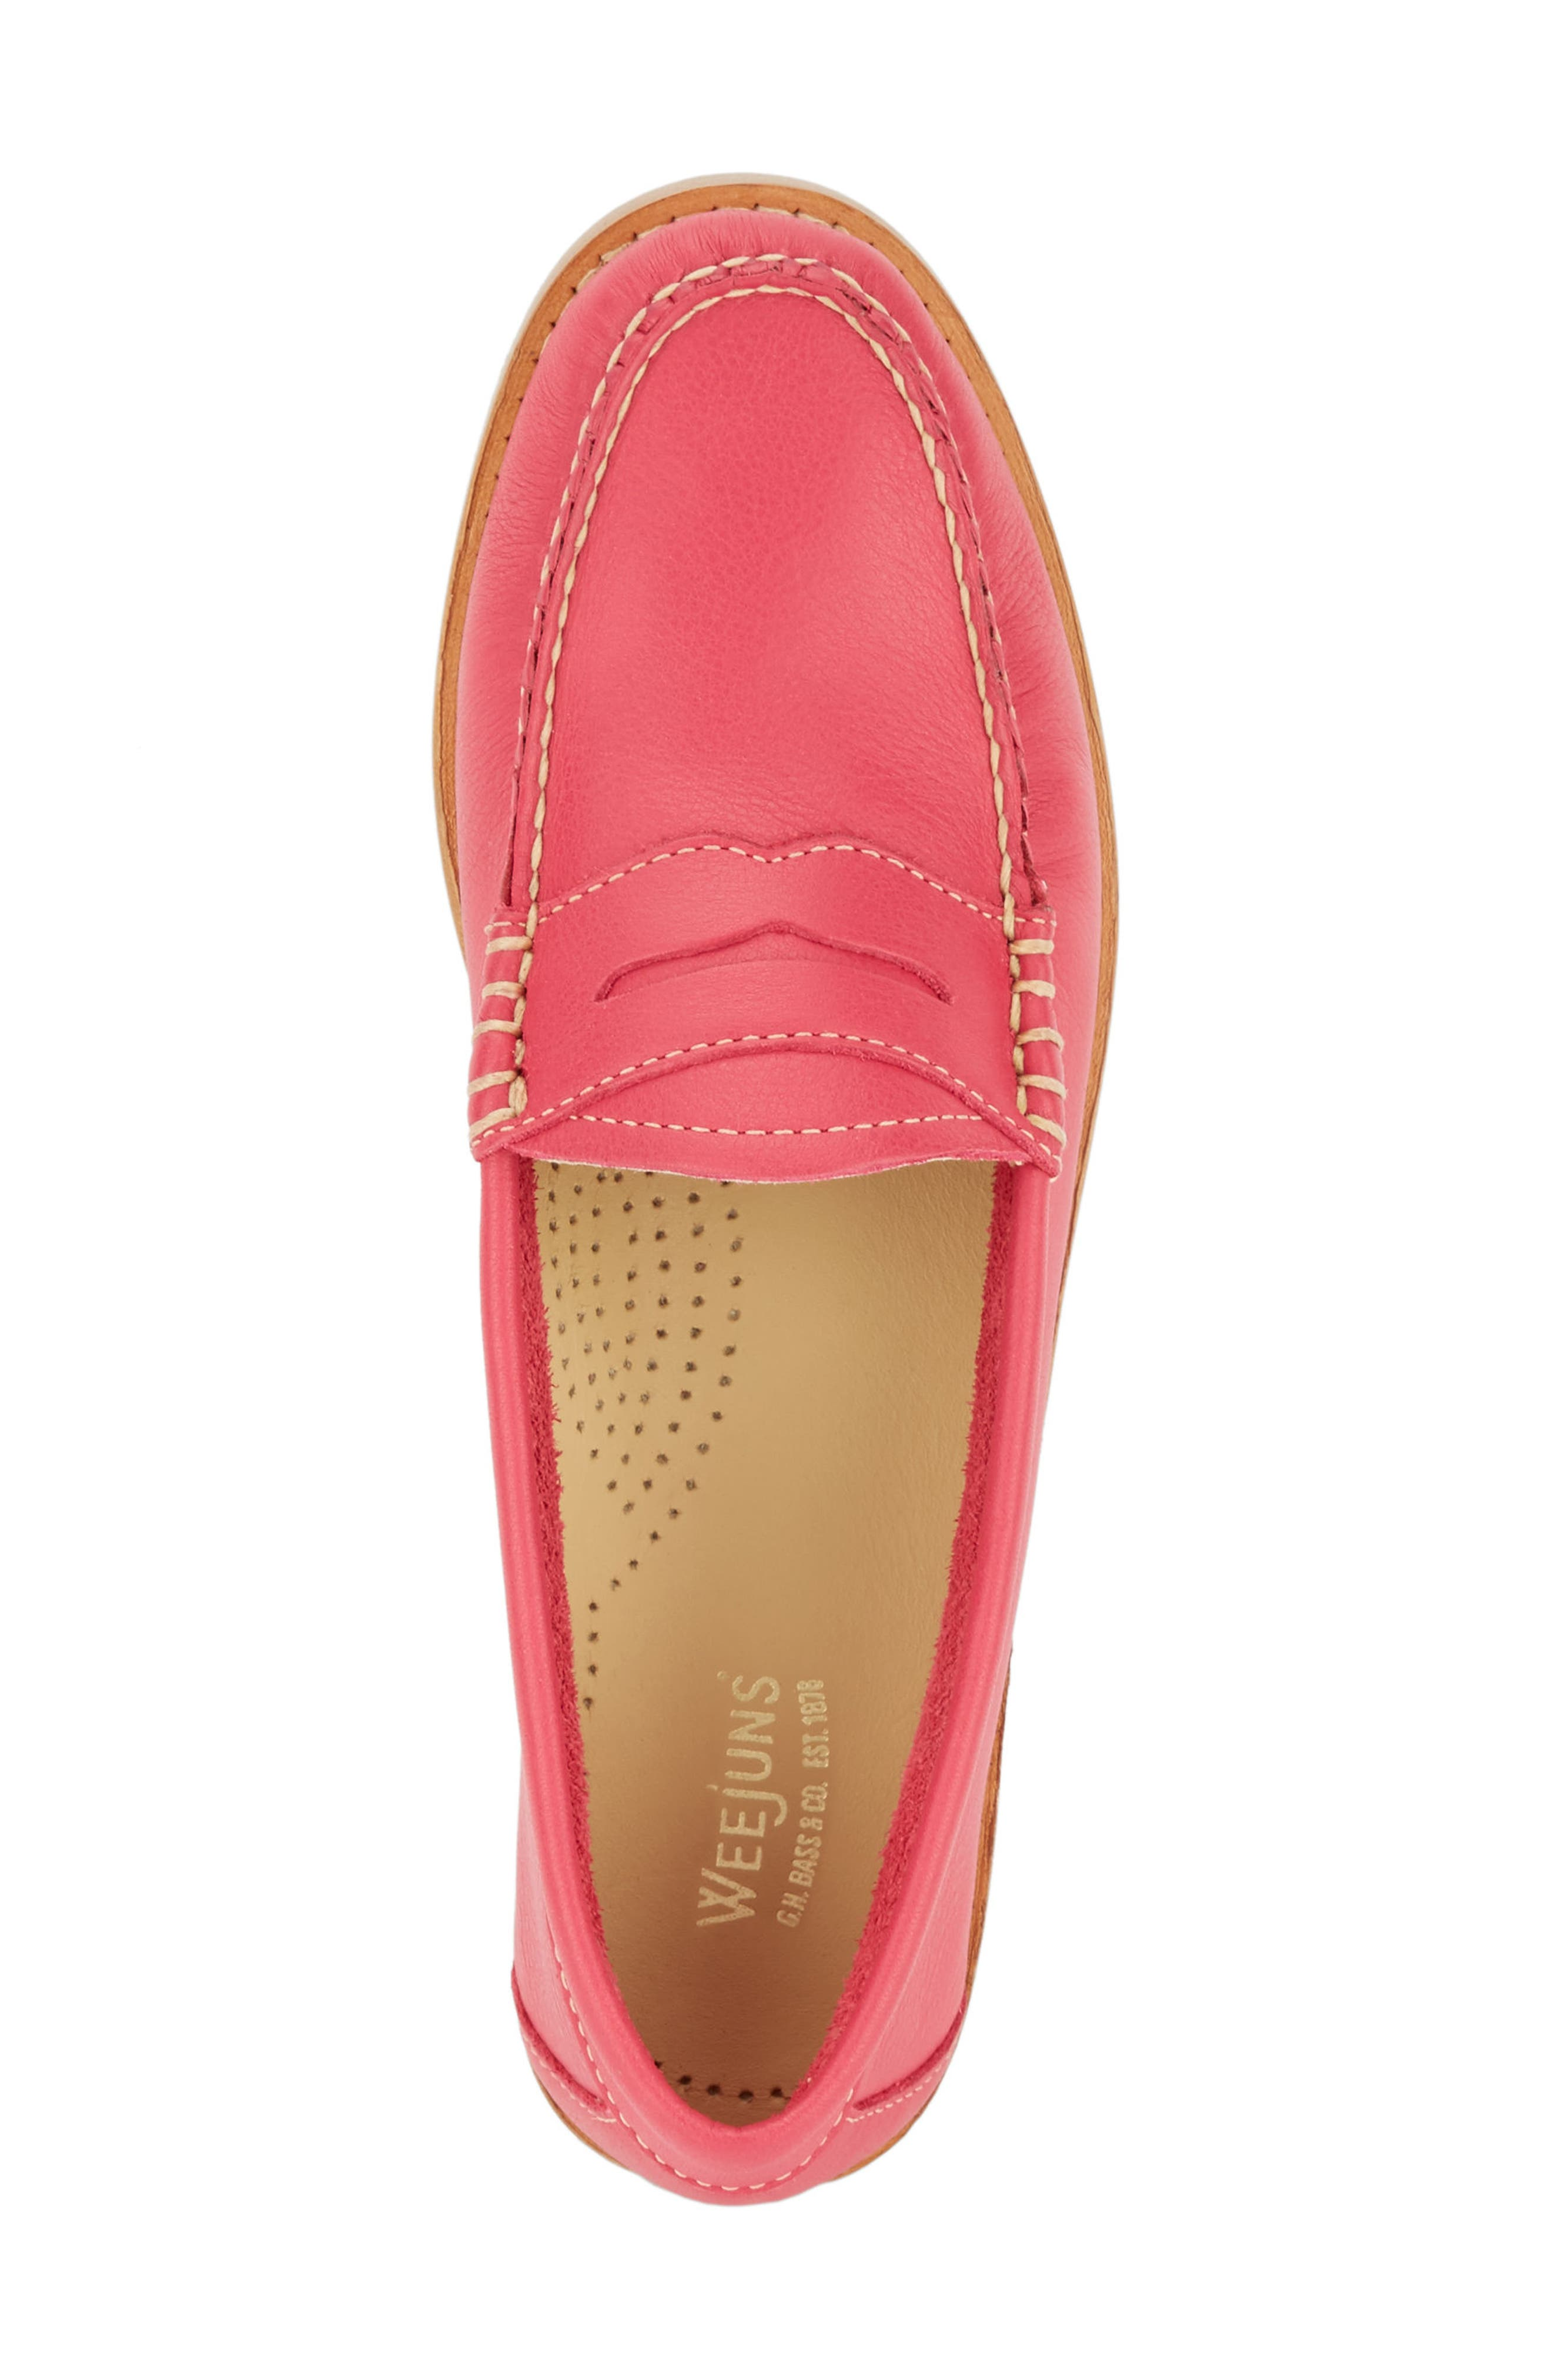 'Whitney' Loafer,                             Alternate thumbnail 5, color,                             BERRY PINK LEATHER